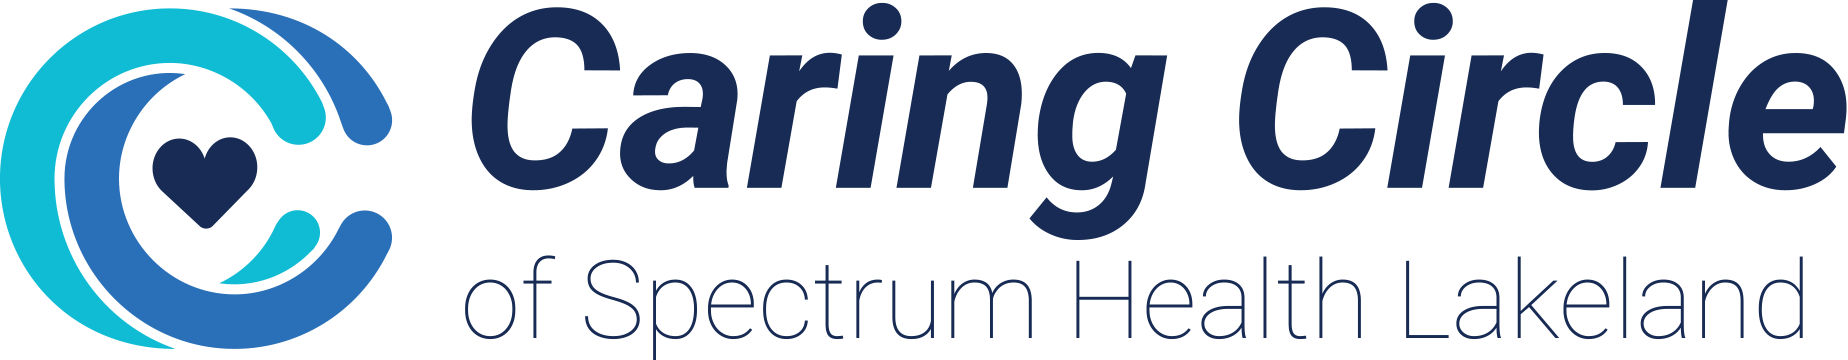 Image of Caring Circle Logo